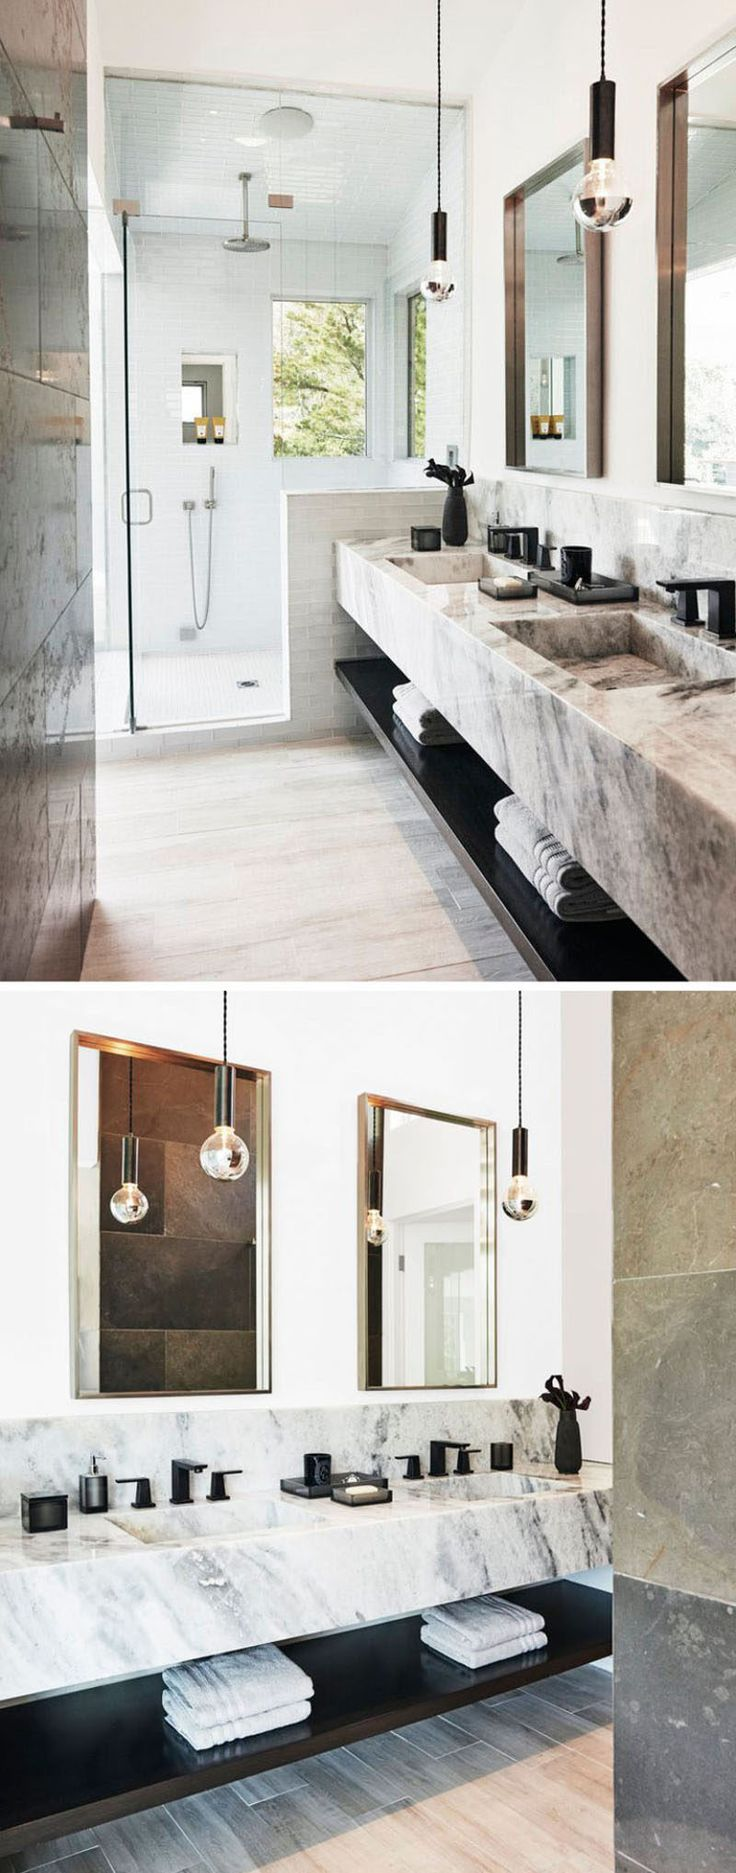 179 best Bathrooms images on Pinterest | Bathroom, Half bathrooms ...